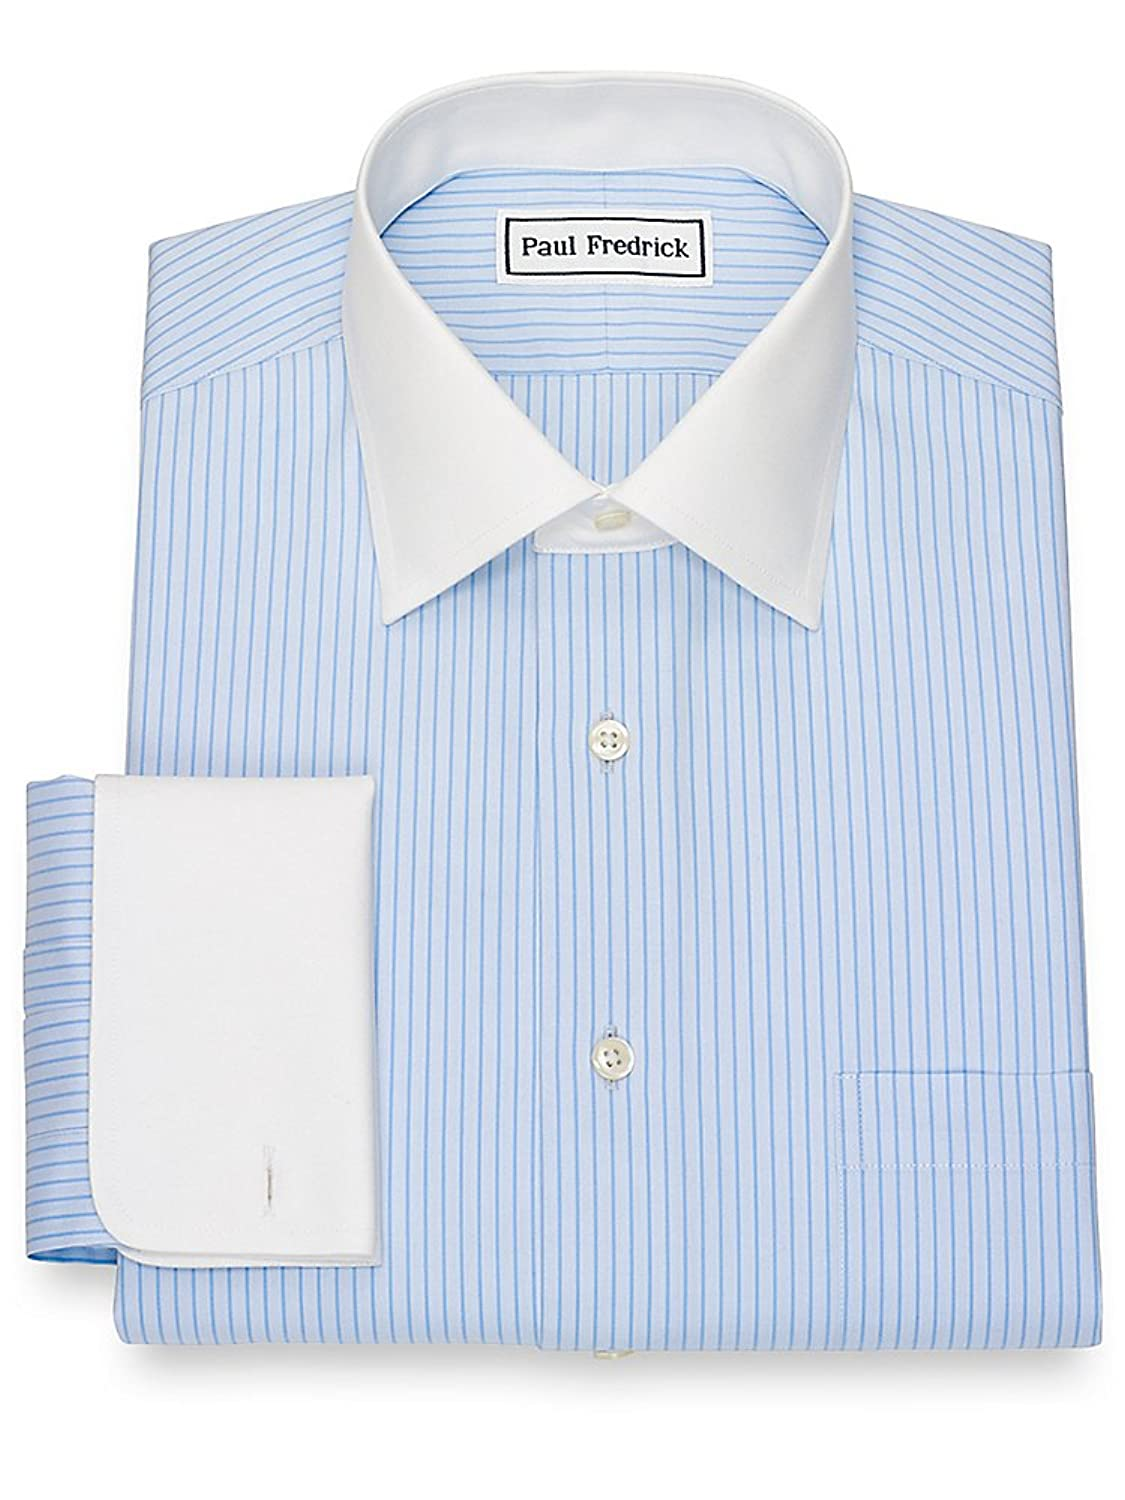 Edwardian Men's Shirts & Sweaters Paul Fredrick Mens Non-Iron Cotton Stripe Dress Shirt  AT vintagedancer.com